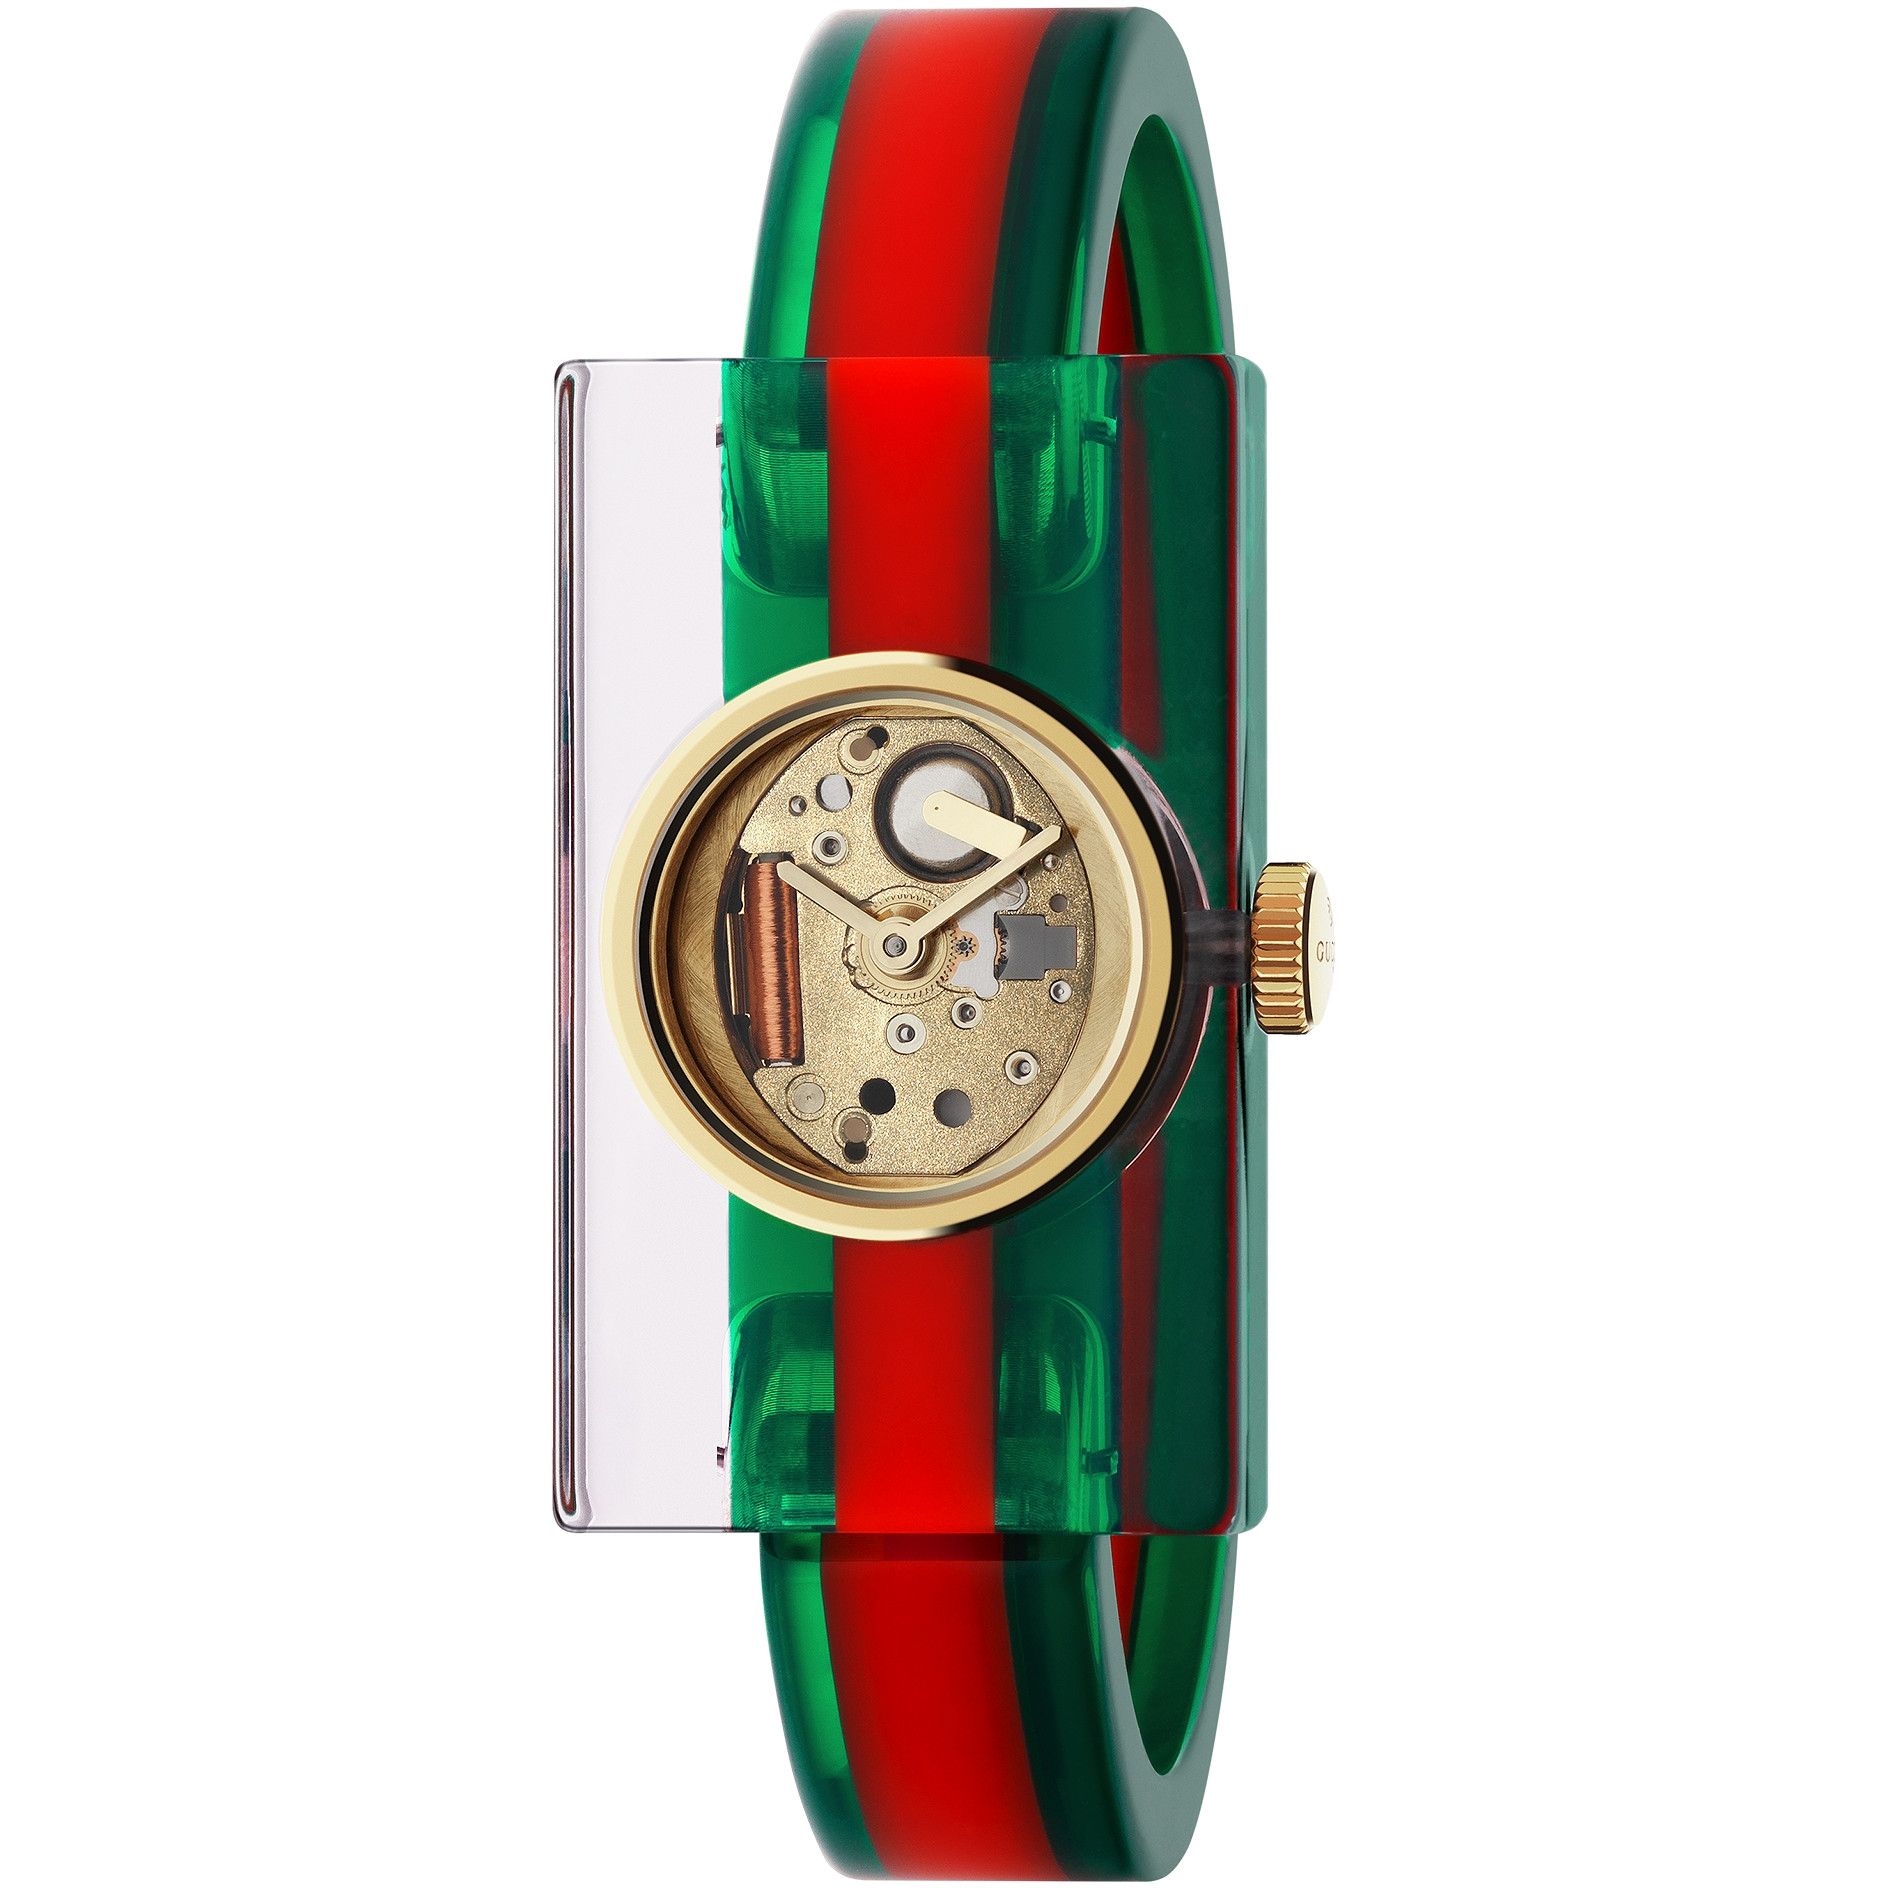 81e8f51a688 Ladies Gucci Web Watch (YA143501)